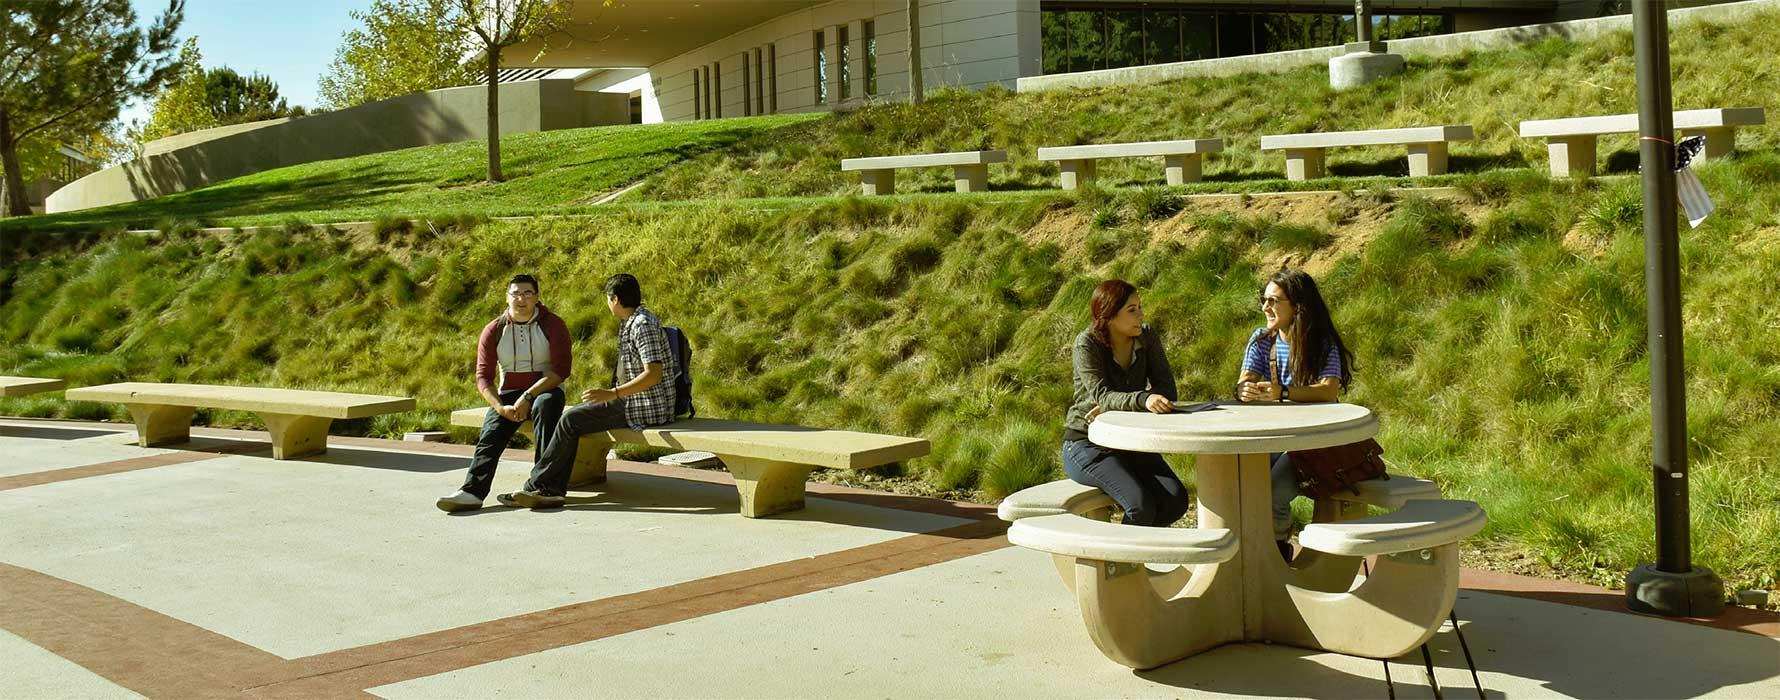 Students sitting at tables